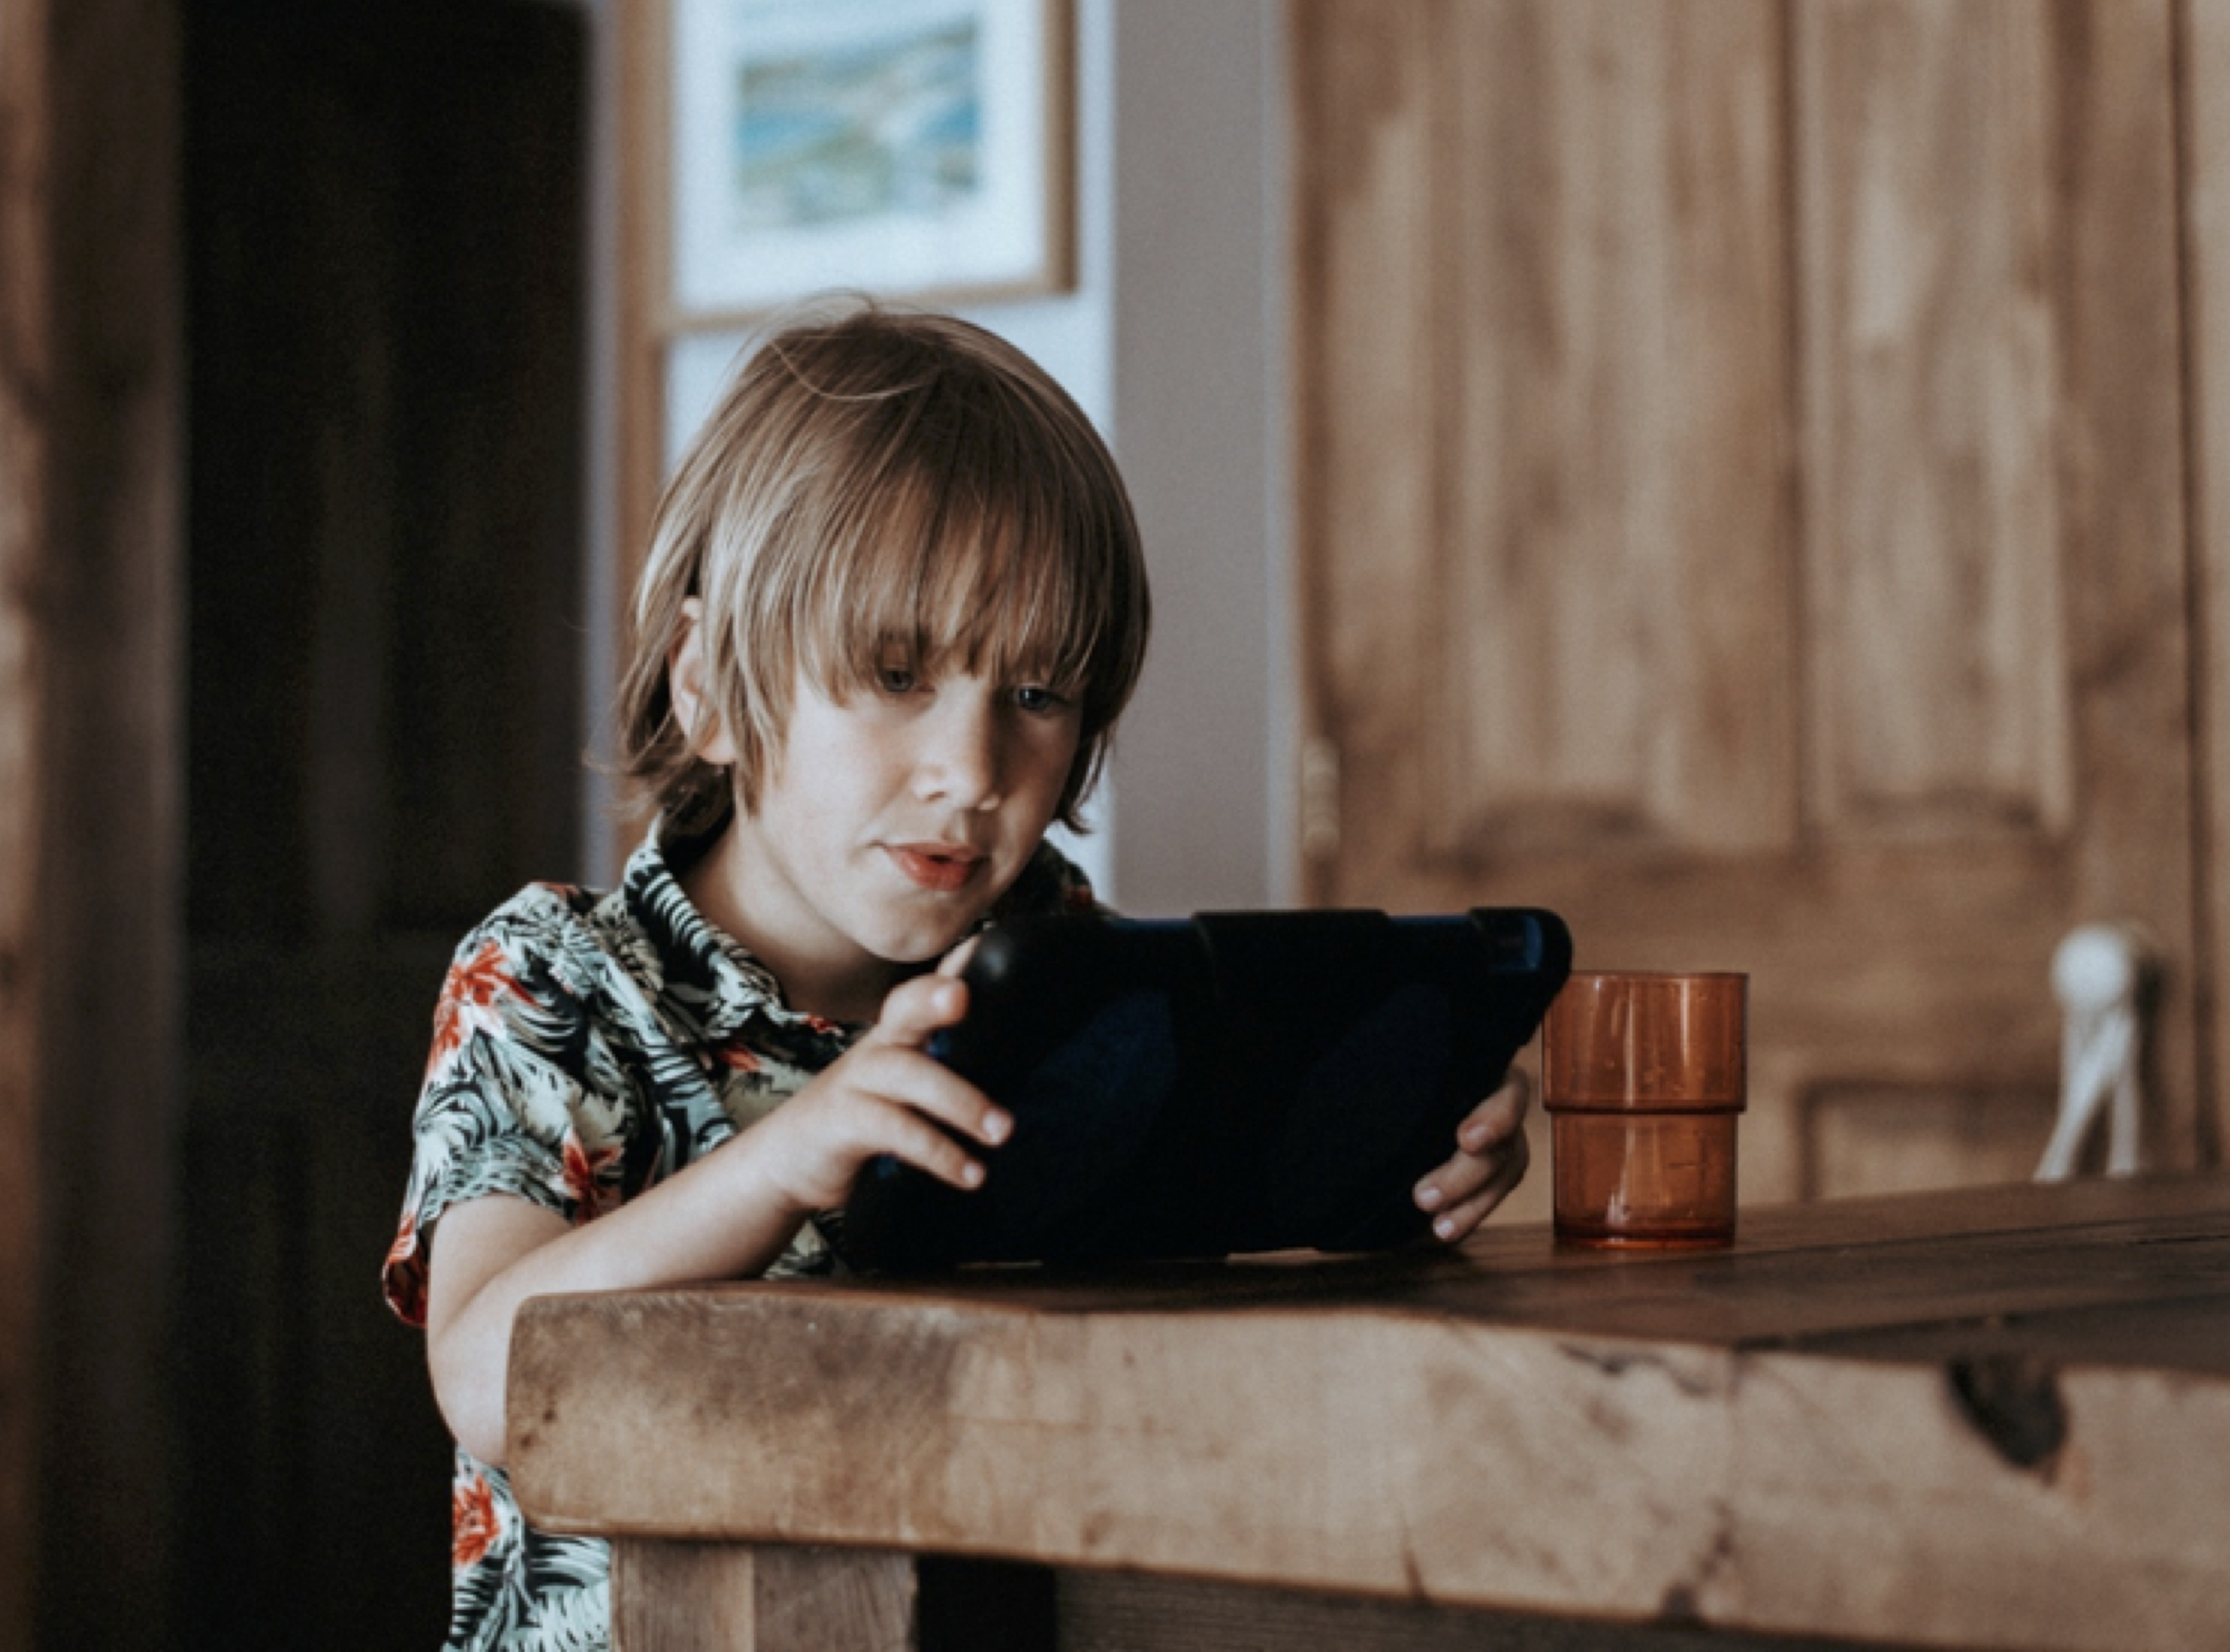 A boy sitting at a table using an iPad